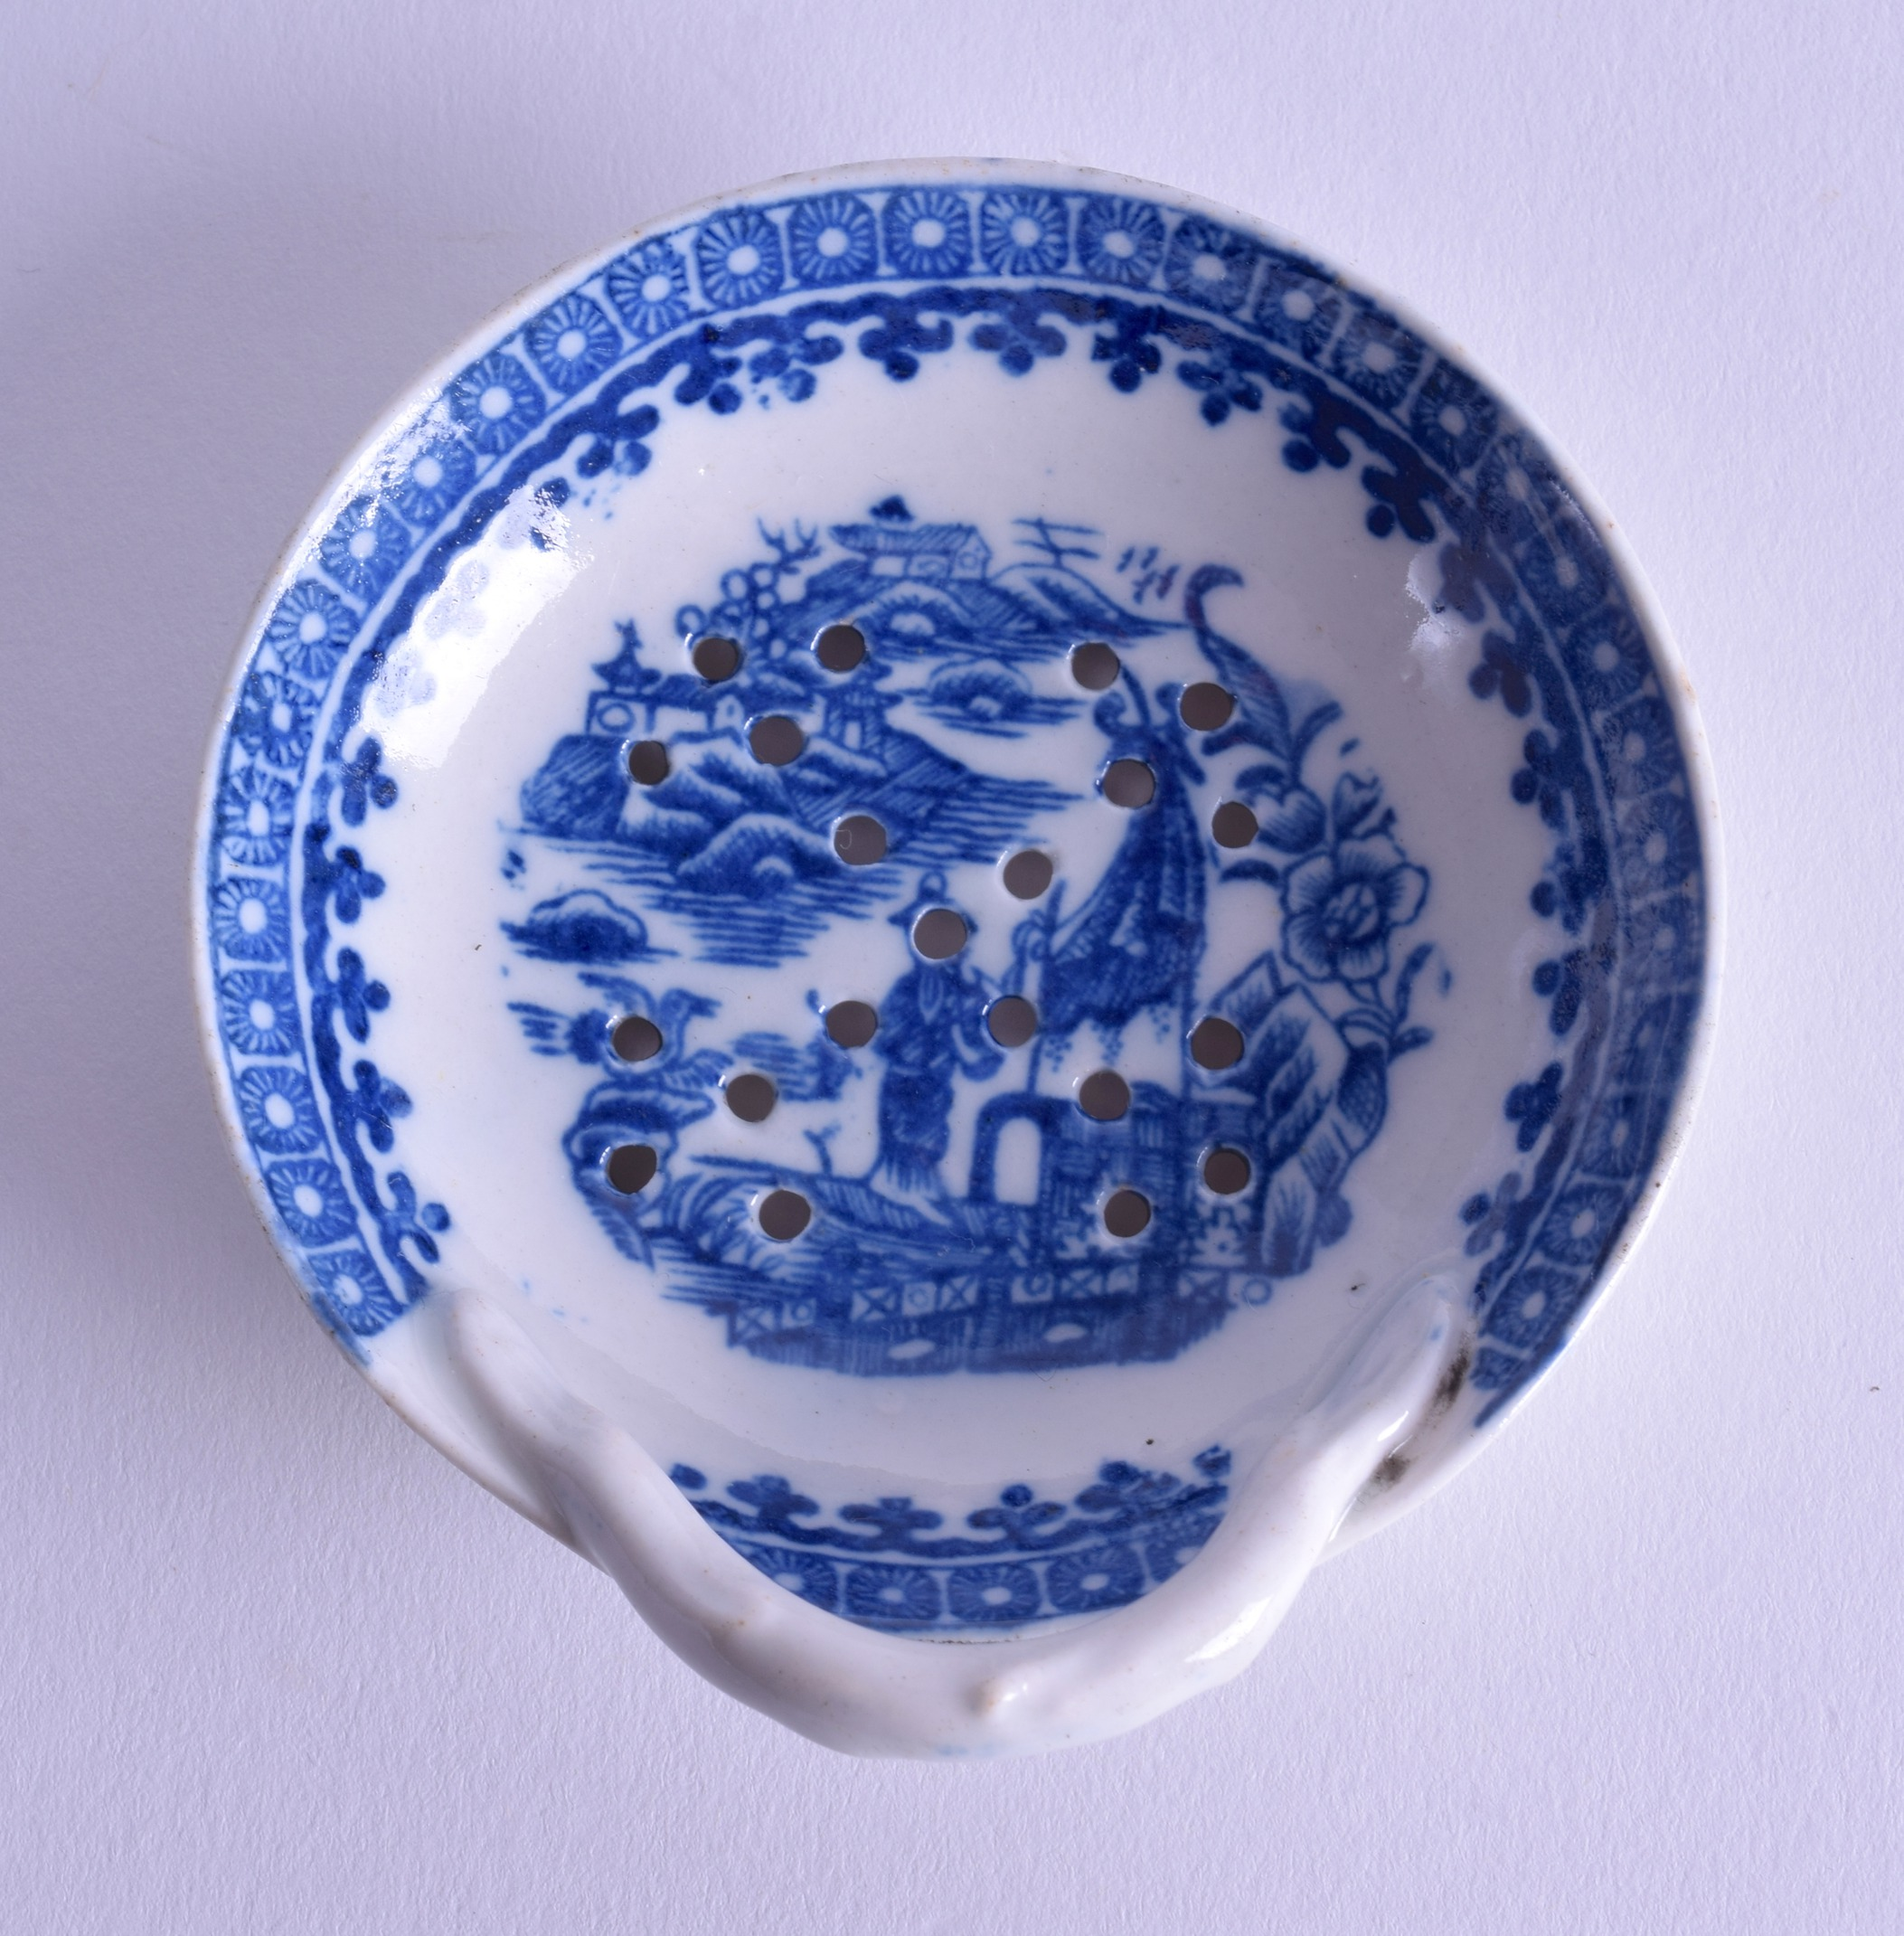 Lot 150 - 18th c. Caughley egg drainer printed with the Fisherman pattern in blue. 8.5cm diameter